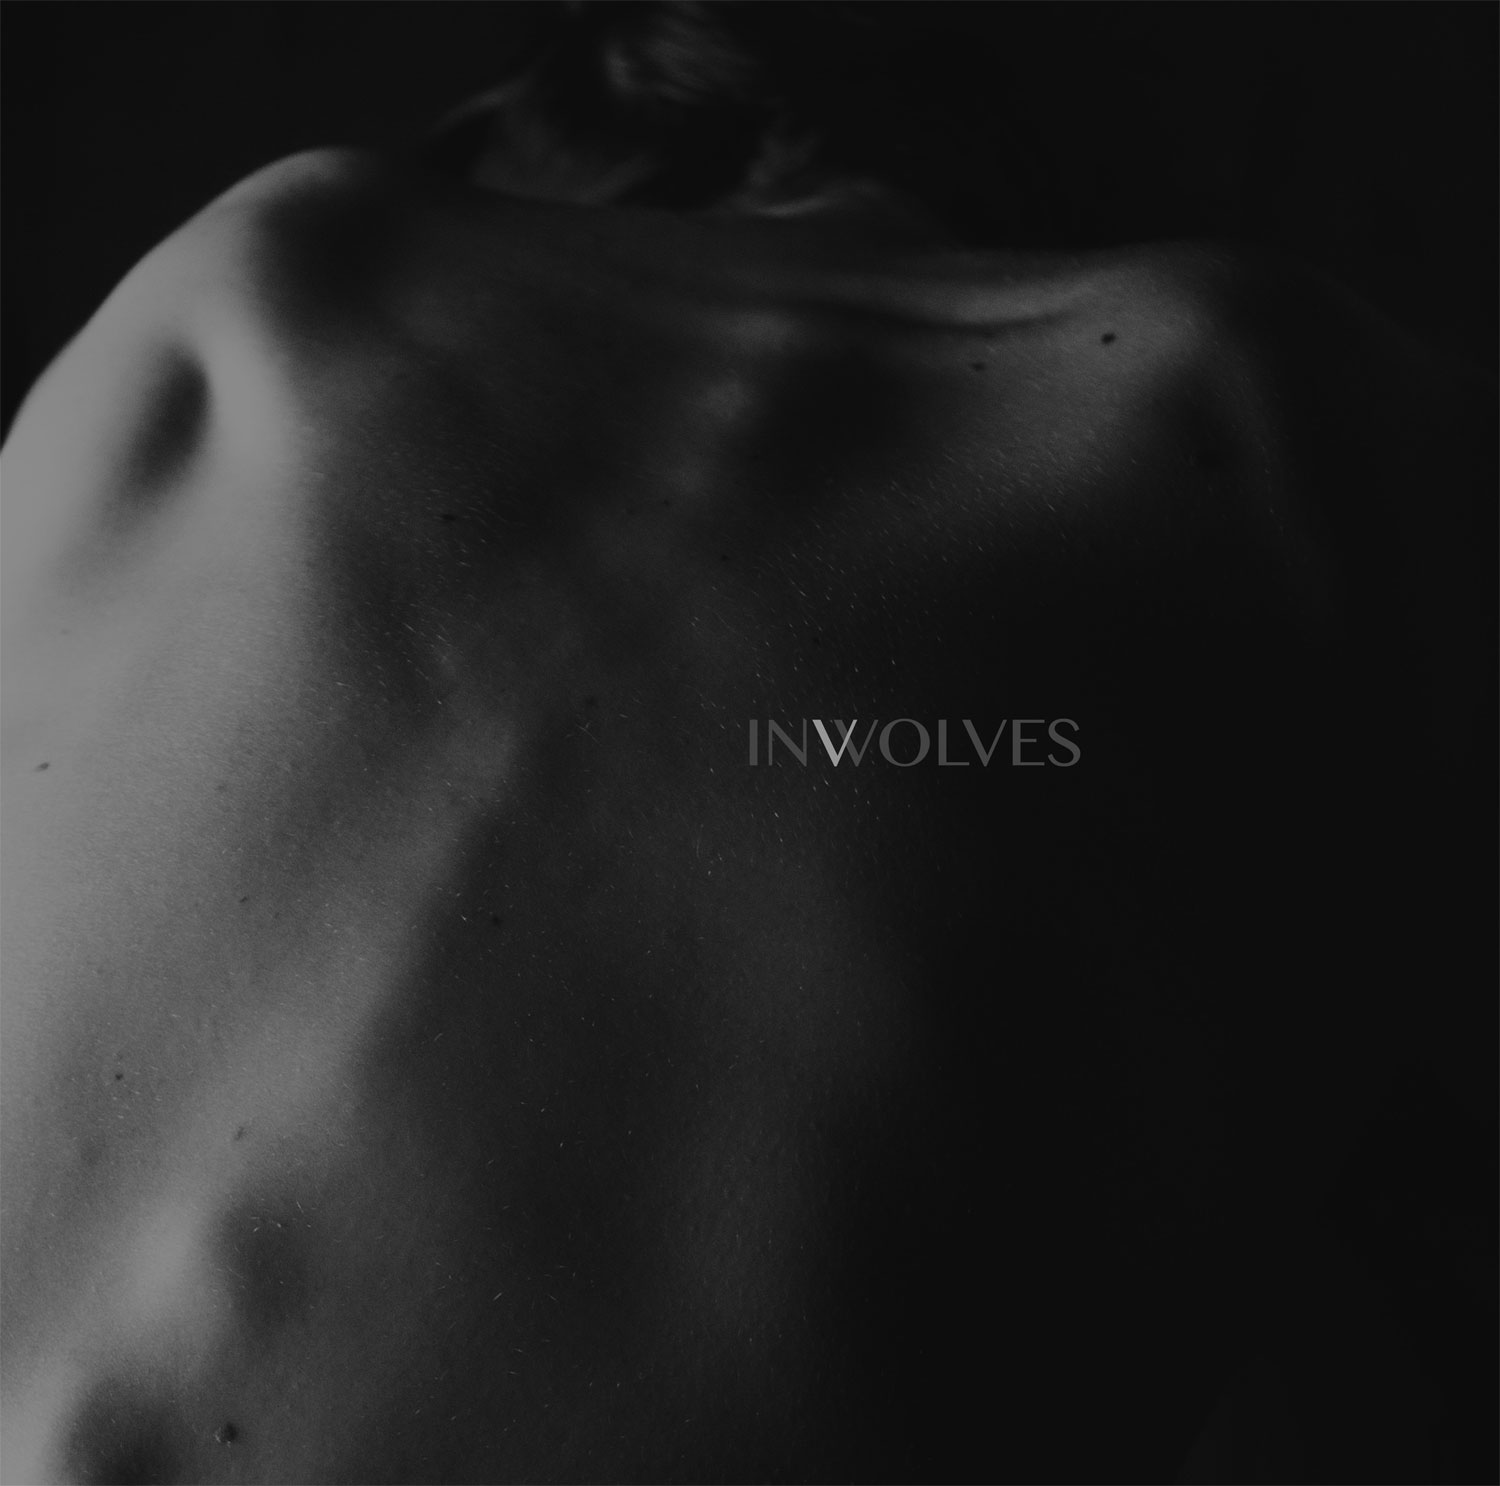 INWOLVES Involves - Vinyl LP (black)